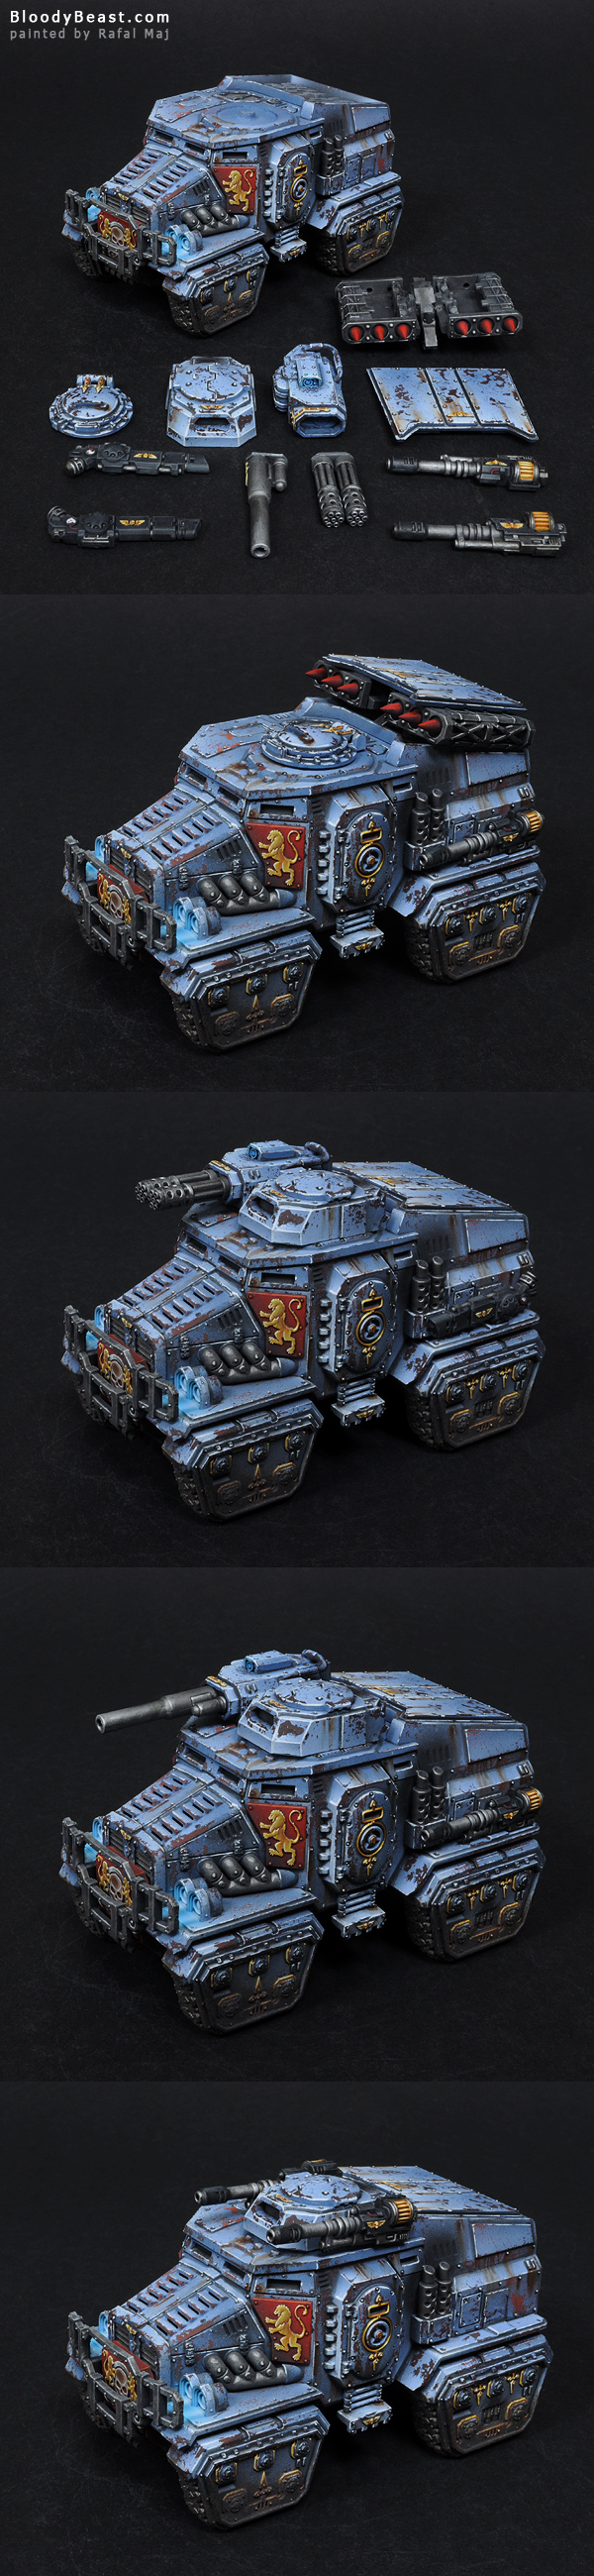 Taurox Prime painted by Rafal Maj (BloodyBeast.com)